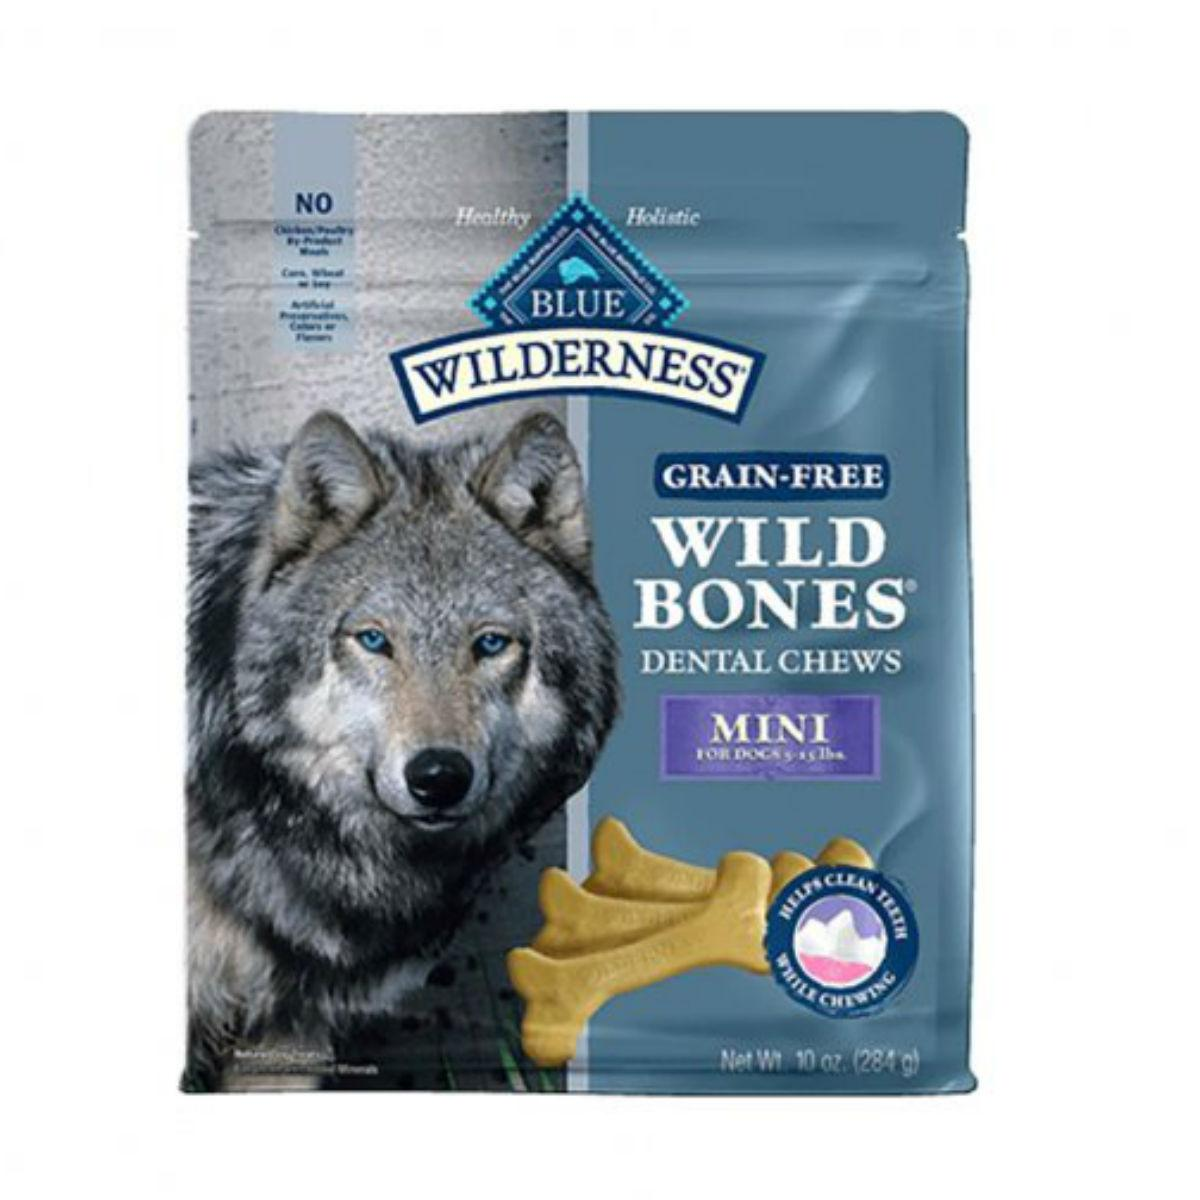 Blue Buffalo Wilderness Wild Bones Grain Free Dental Dog Chew